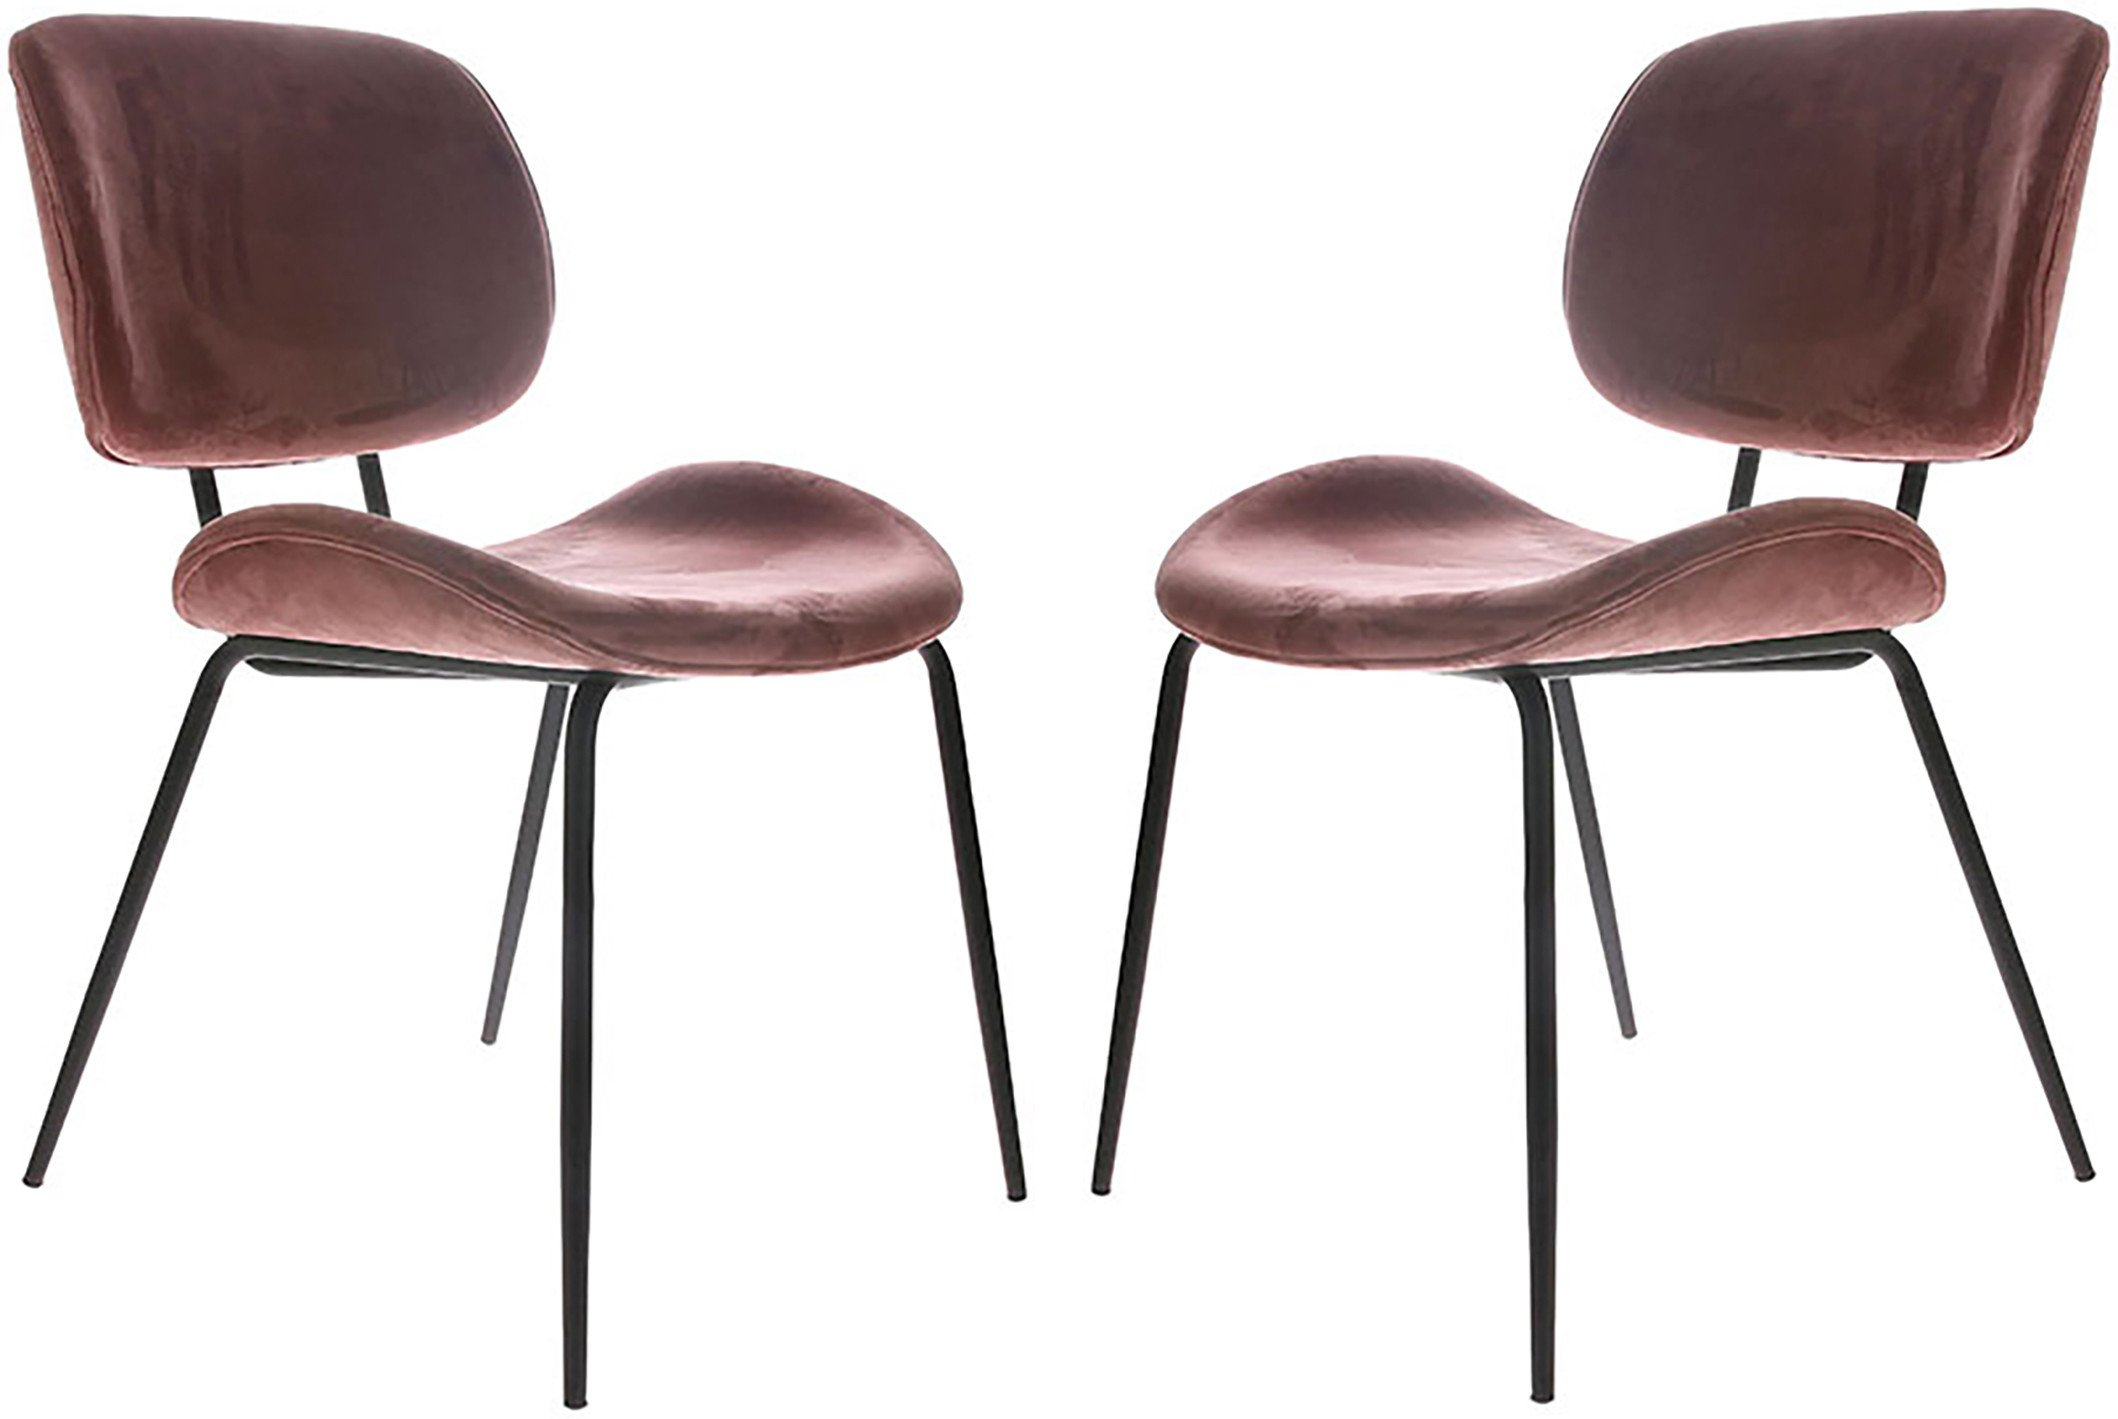 Pair of Pink Velvet Chairs, HKliving